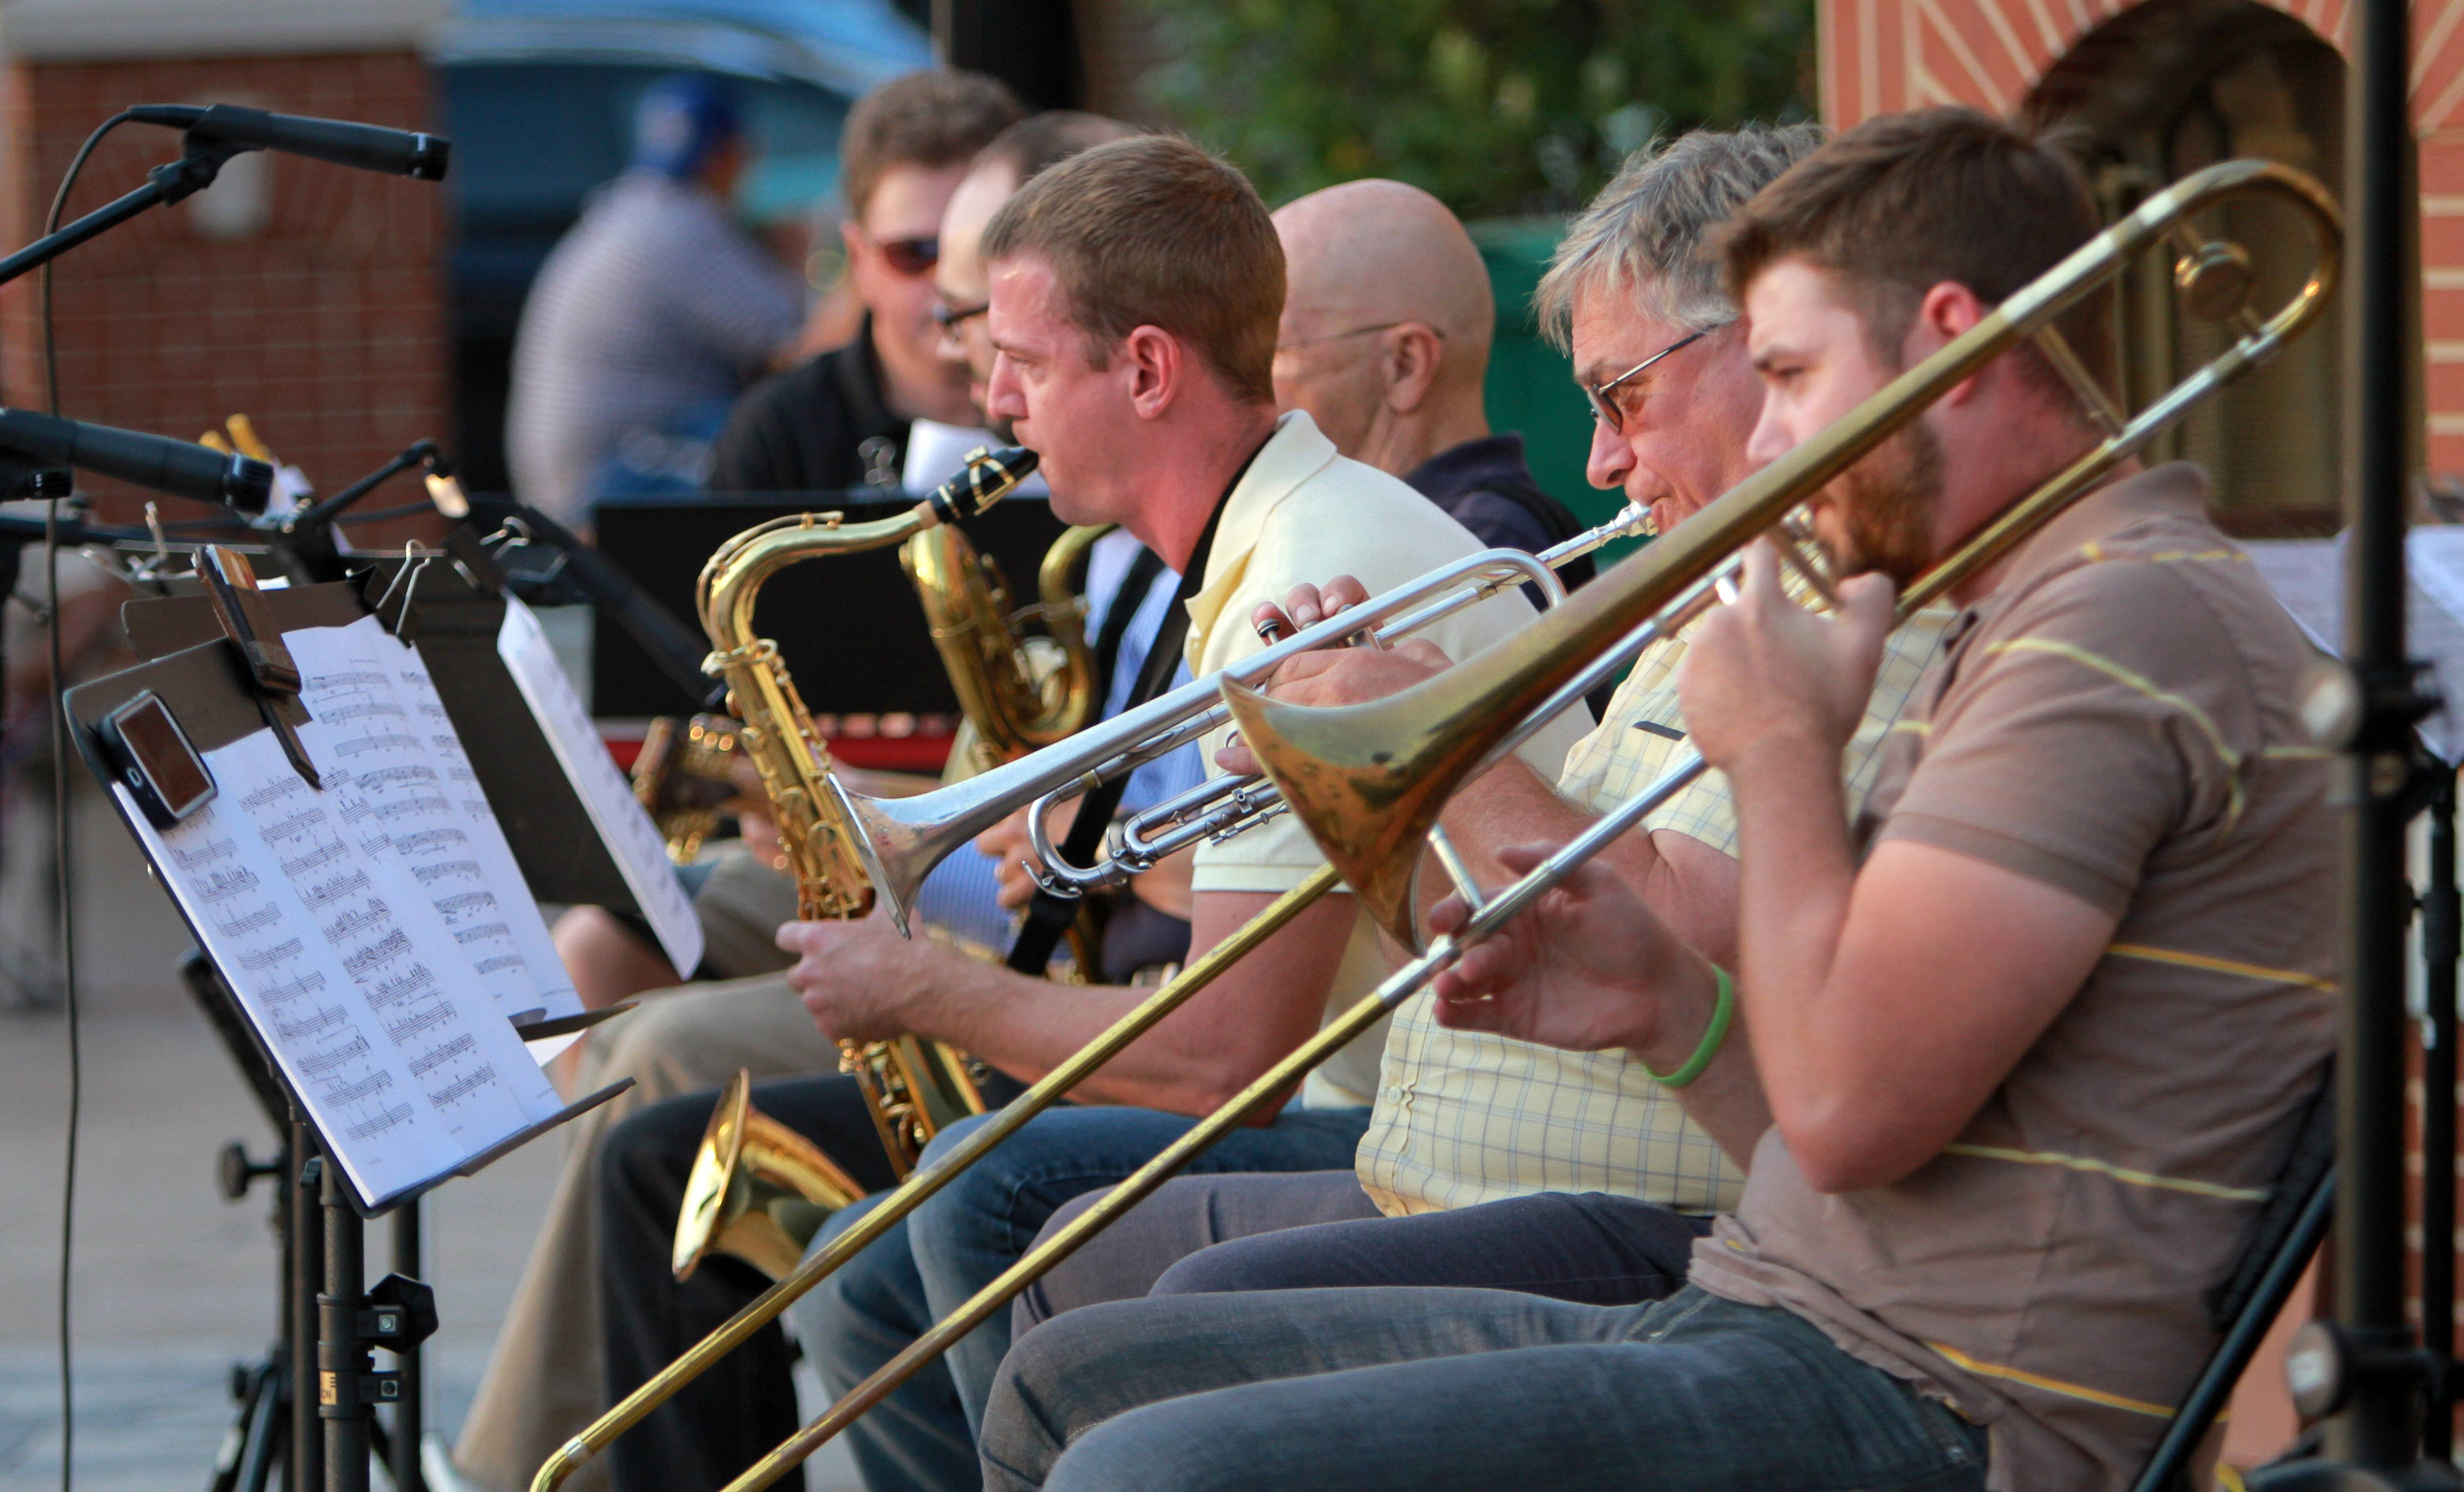 The Mike Flack Octet play some cool jazz music Tuesday night at Centennial Park in Grayslake.